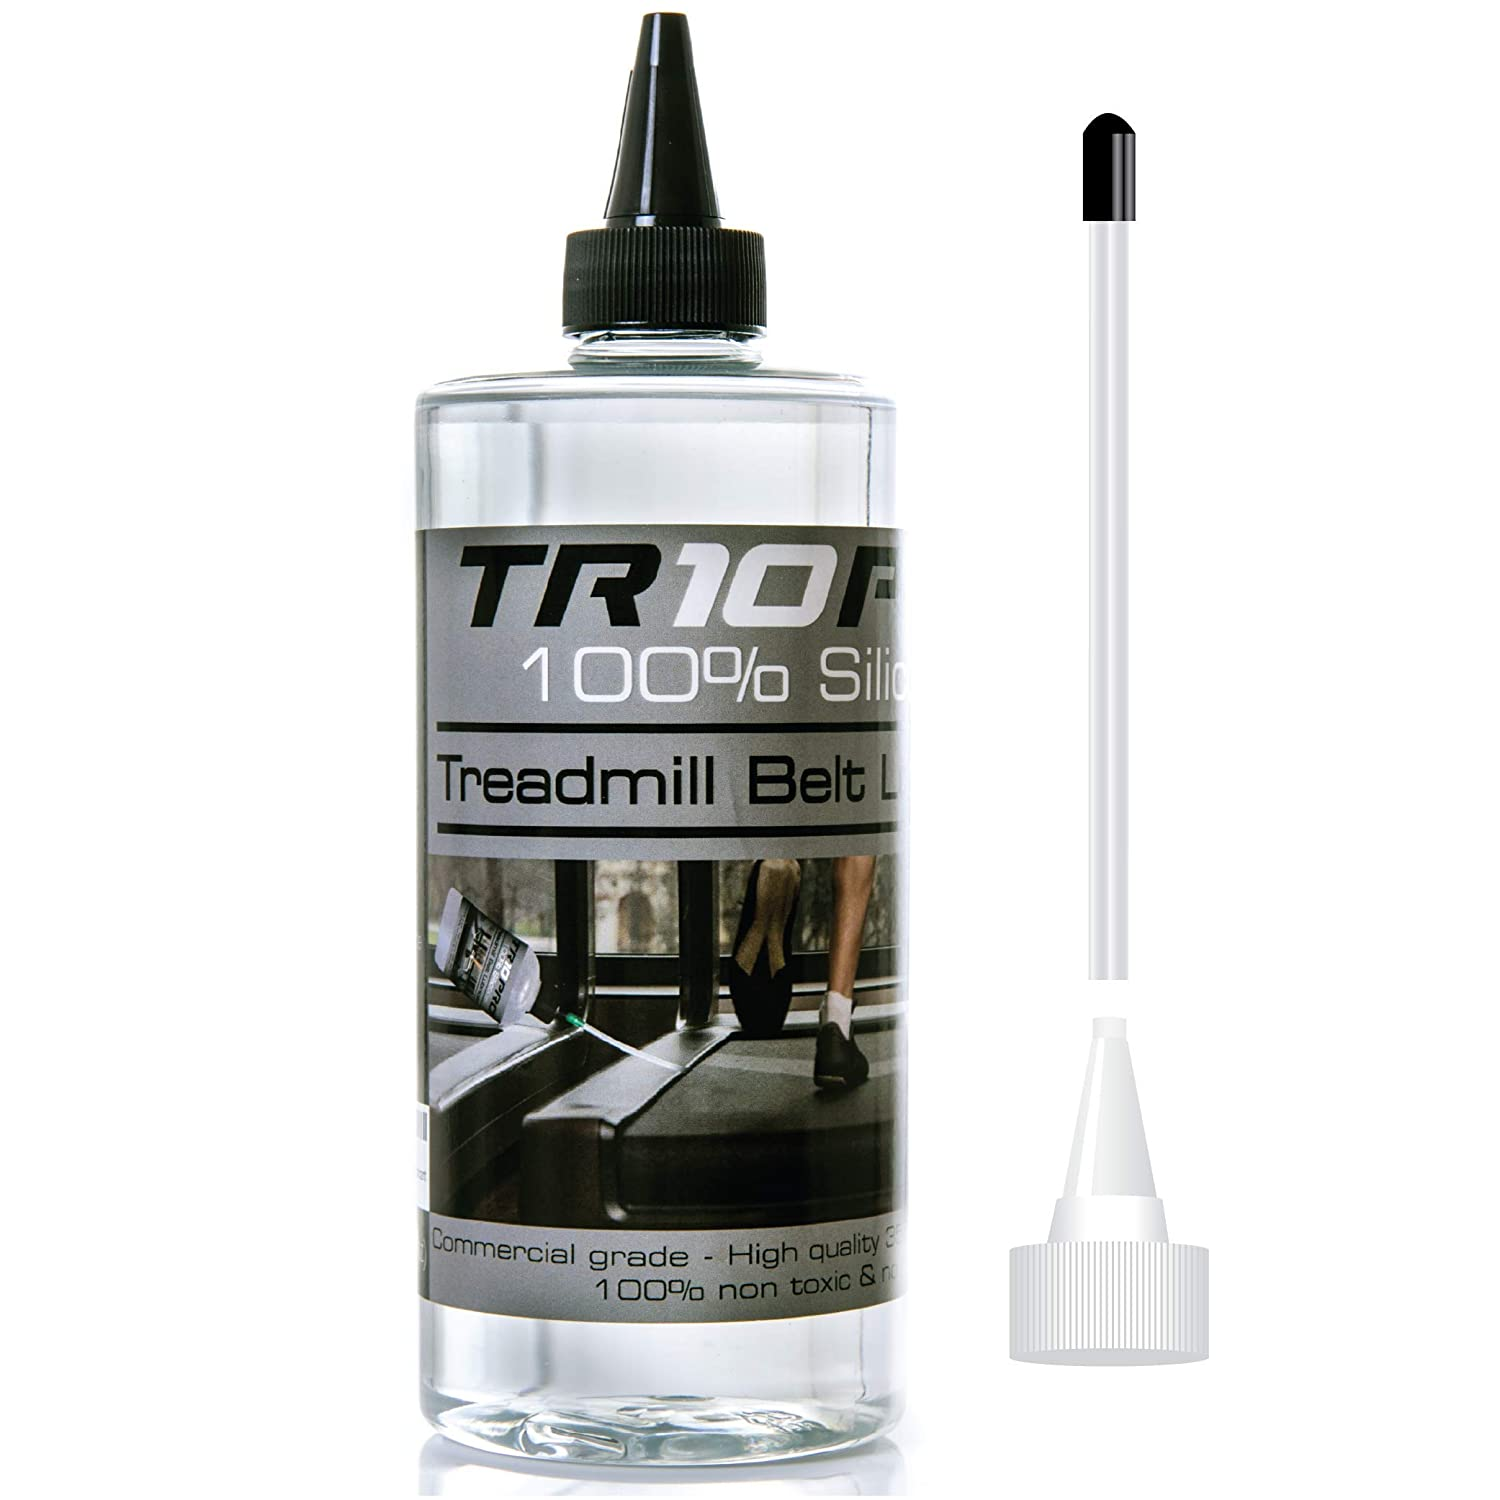 Silicone Treadmill Lubricating Oil –TR10 PRO Renew & Revive the Lifespan of the Belts for your Treadmill! Easy to Apply, Easy to Use Treadmill Belt Lubricant – Comes with Handy Applicator! Wide Range of Application – Custom Formulated for All Treadmil